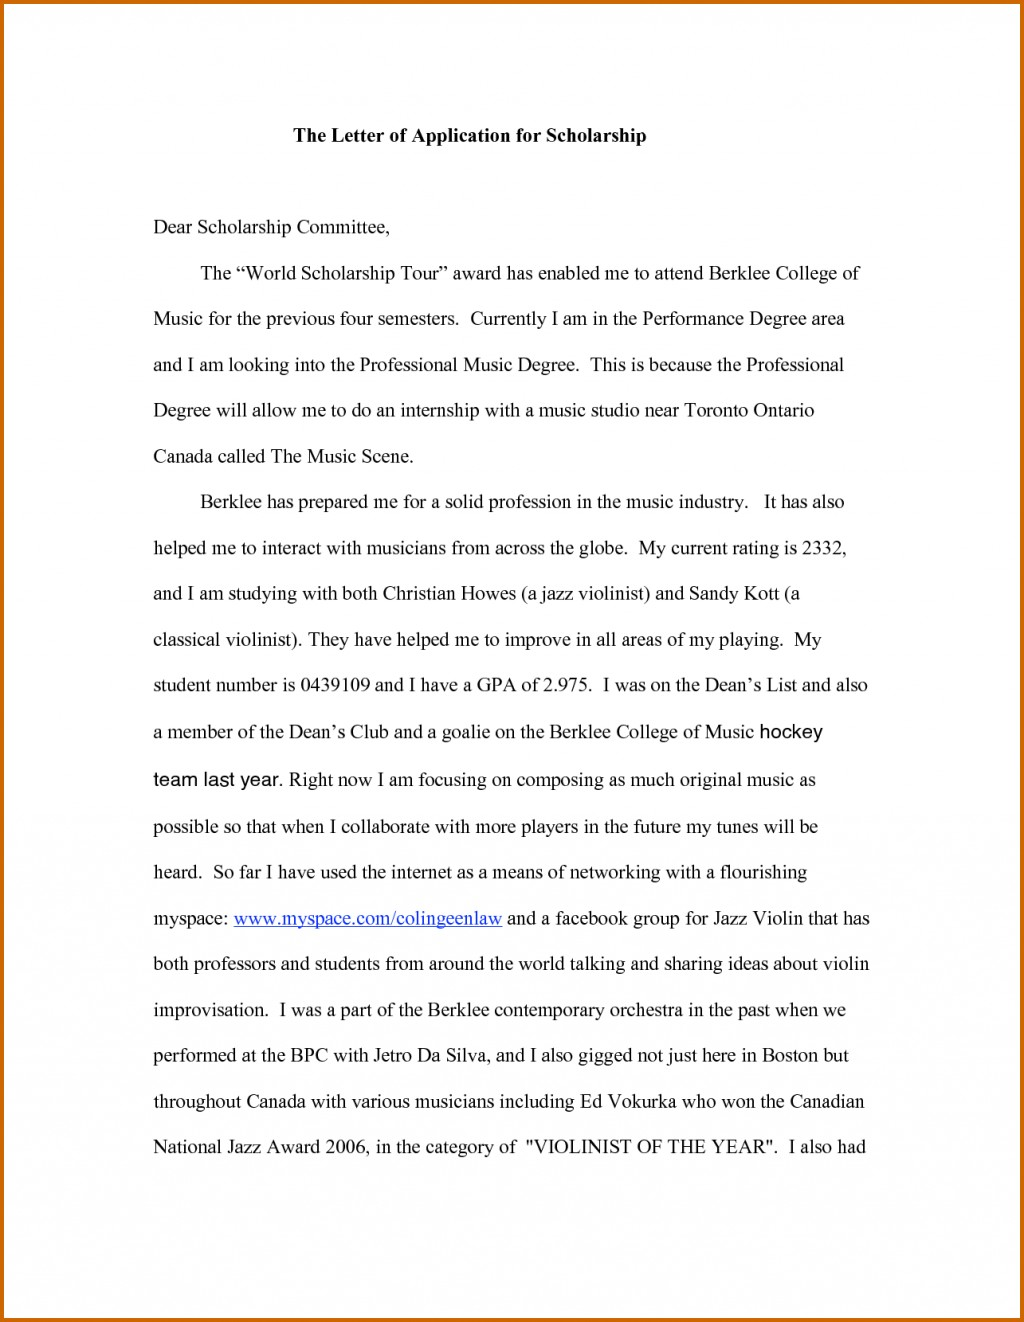 012 How To Format Scholarship Essay Write Application For Letter Wondrous A Template Introduction Outline Large